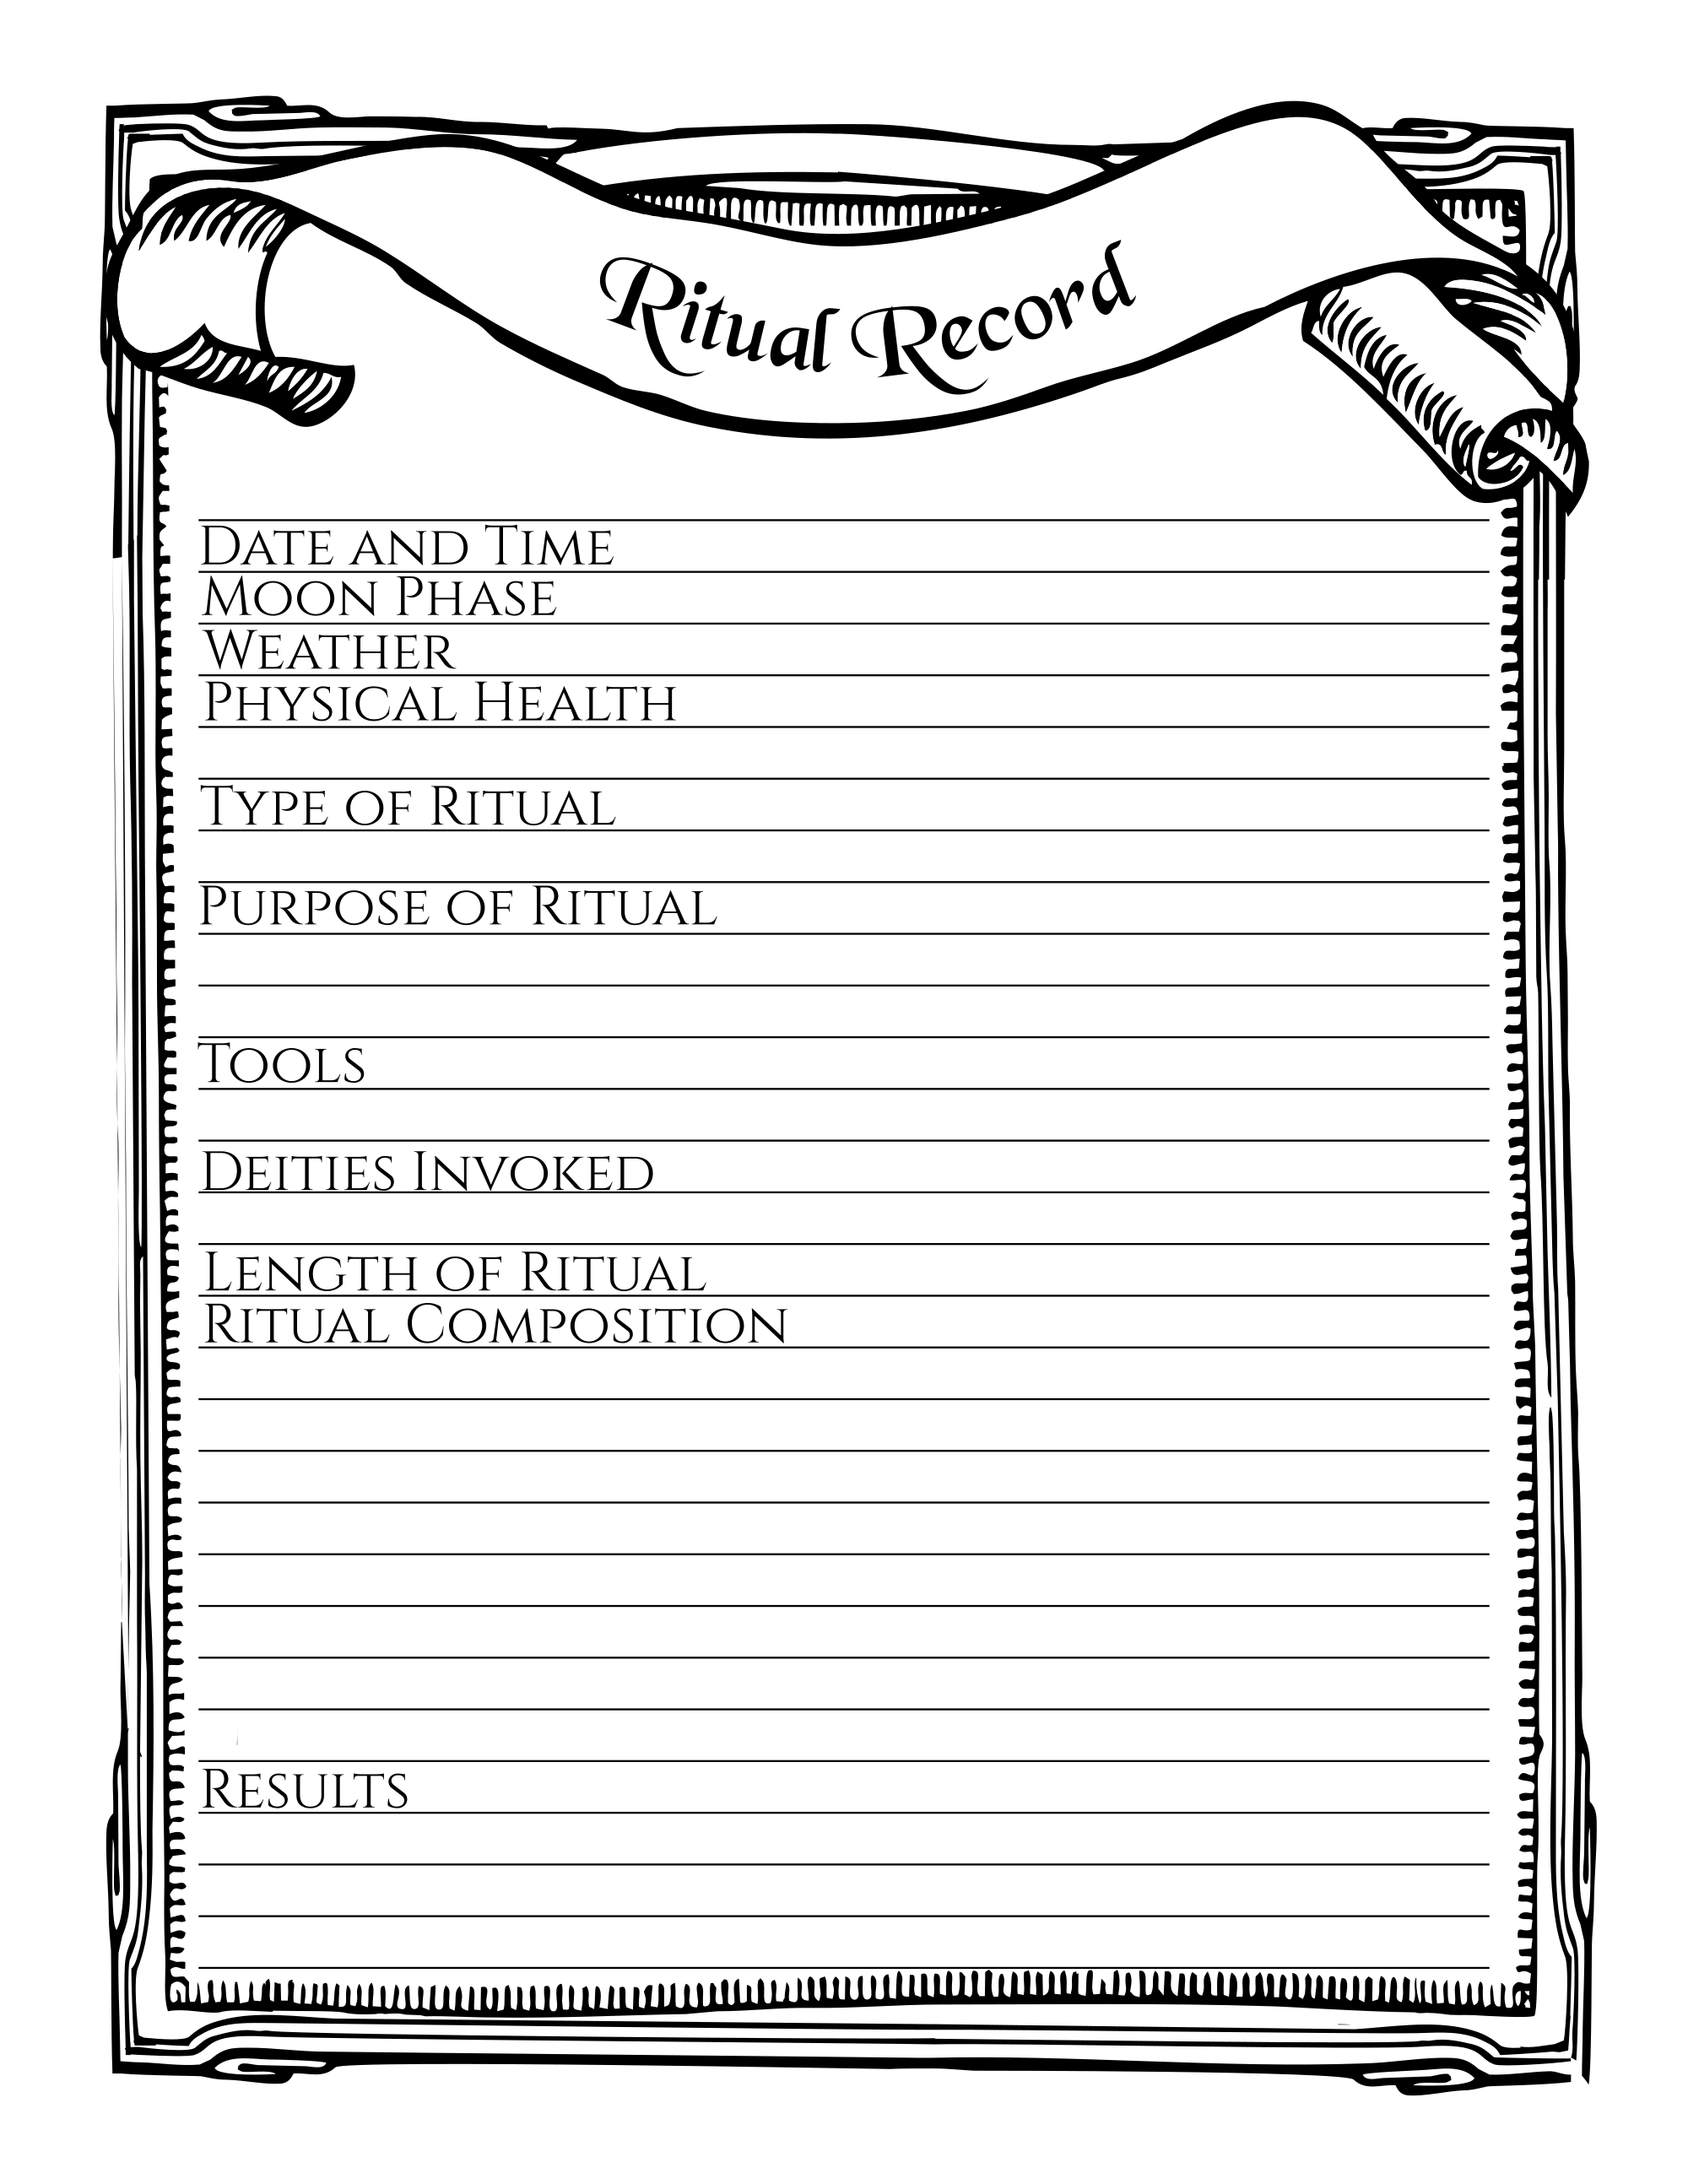 Ritual Record Printable Stationary Page Book of Shadows Free